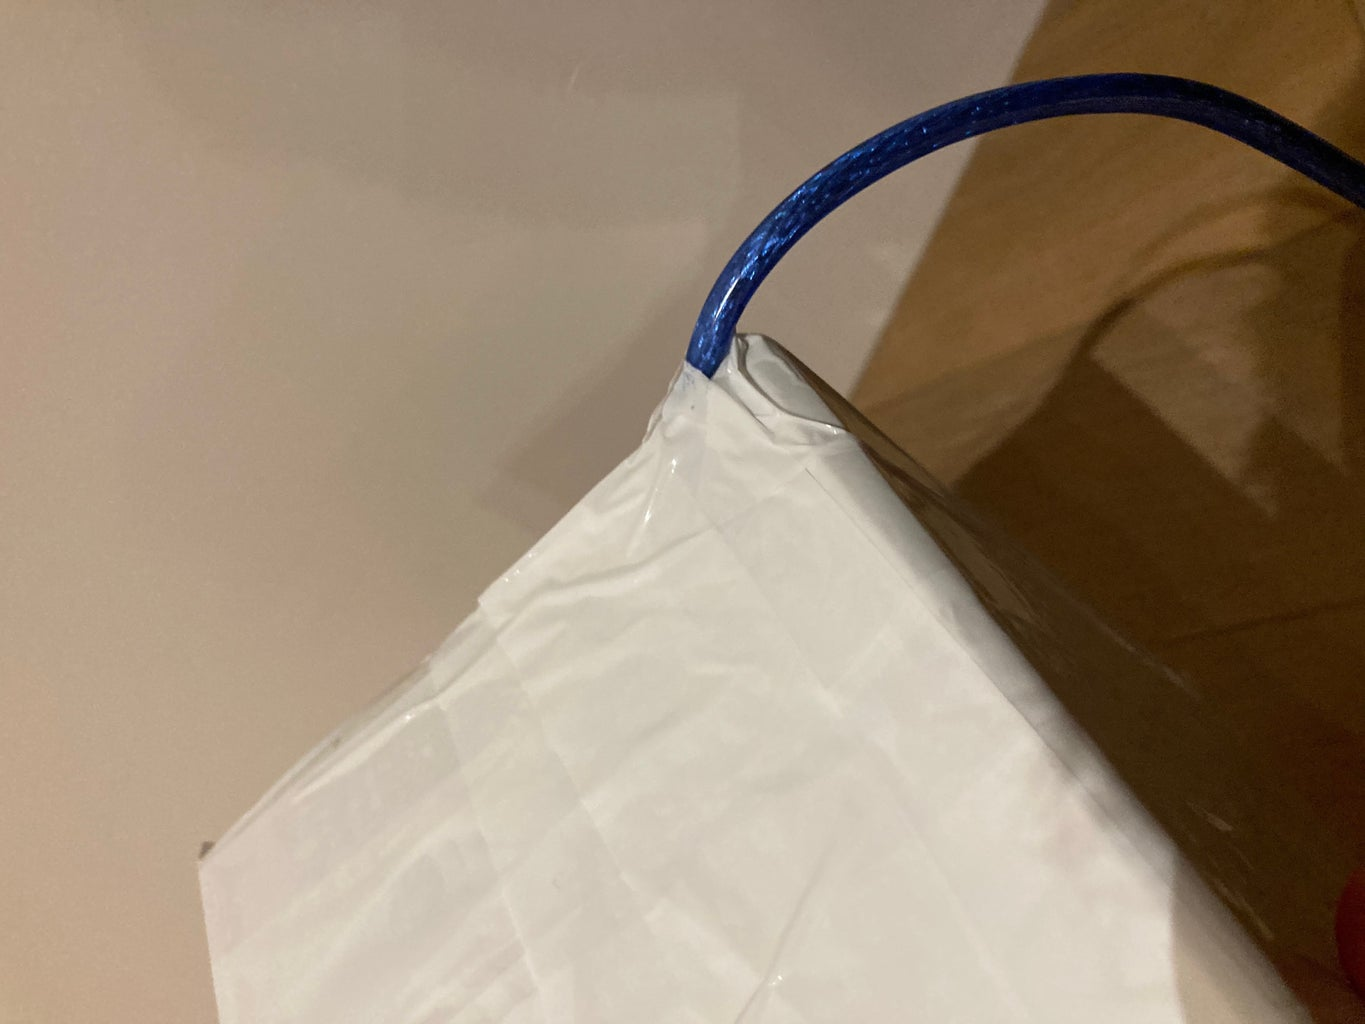 Wrapping Your Container